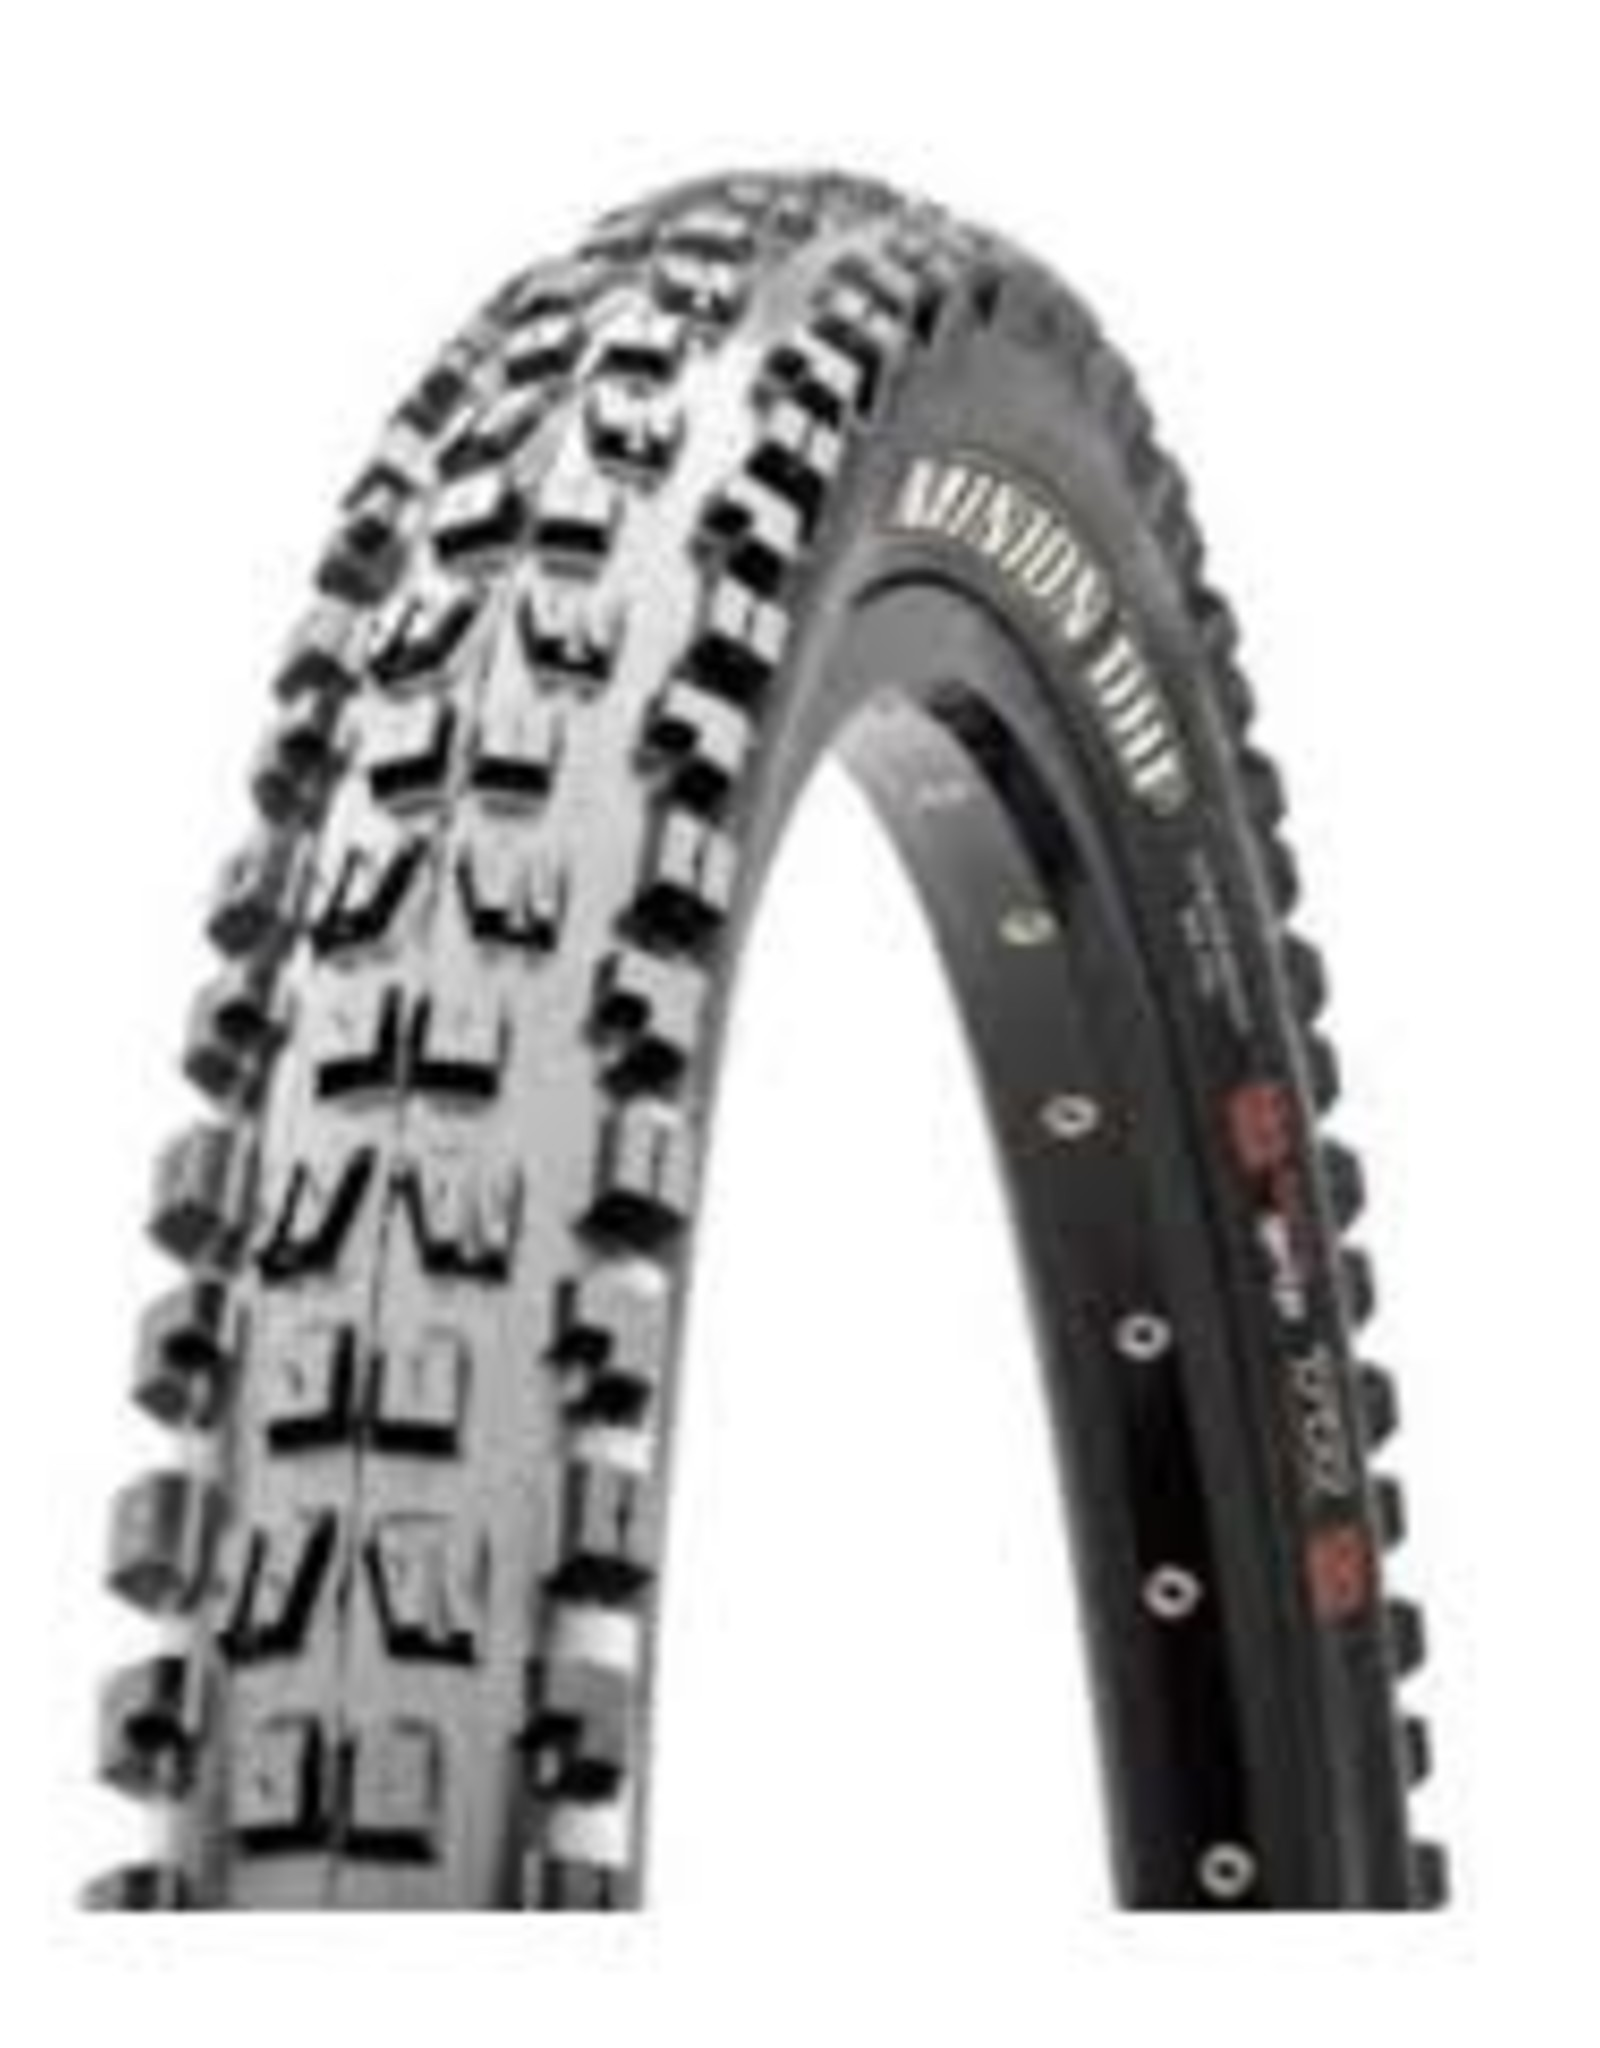 Maxxis MAXXIS DHF EXO+ 29X2.5